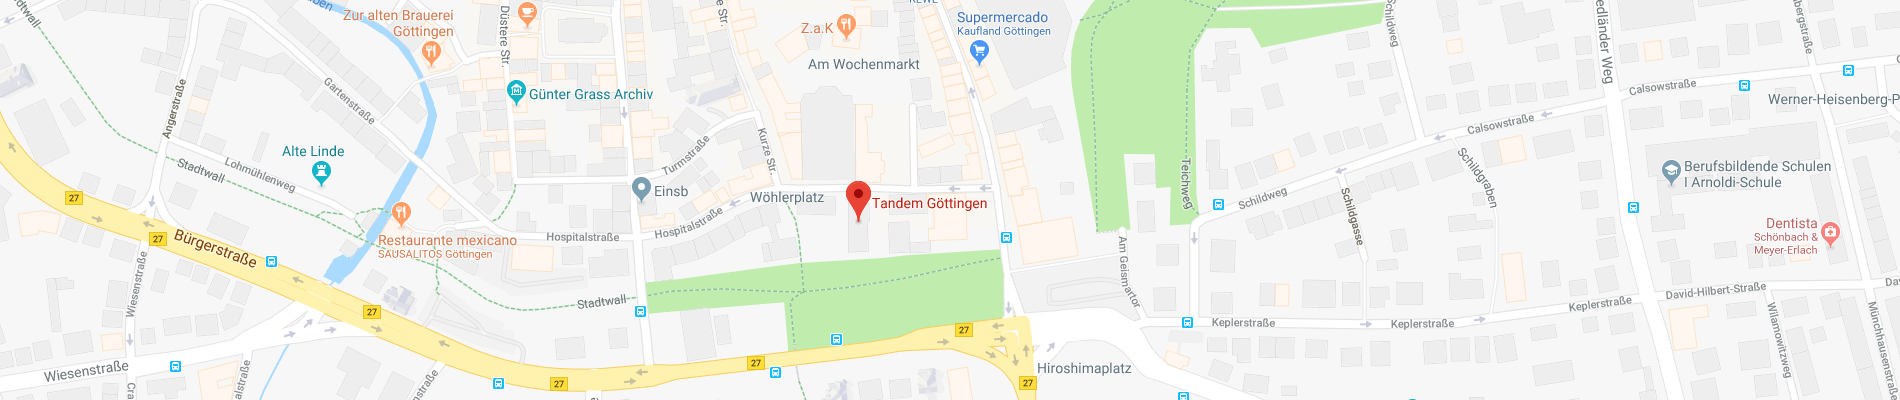 Map Of Germany Gottingen.Tandem Gottingen German Language School In Gottingen Germany